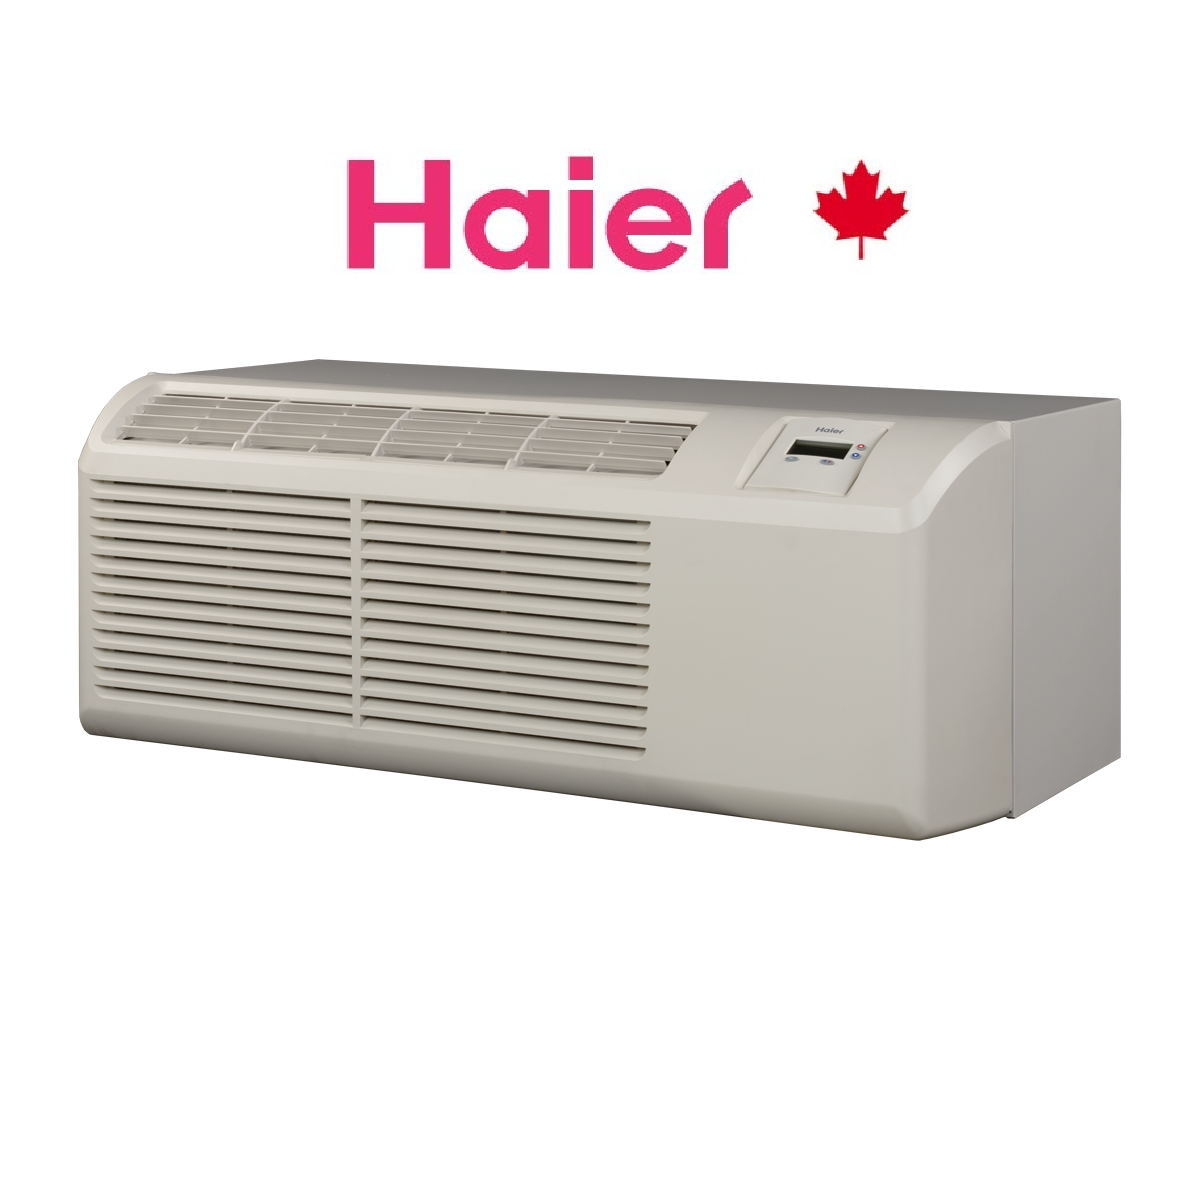 Haier PTCH151UAC 15000 btu PTAC Unit with Electric Heat